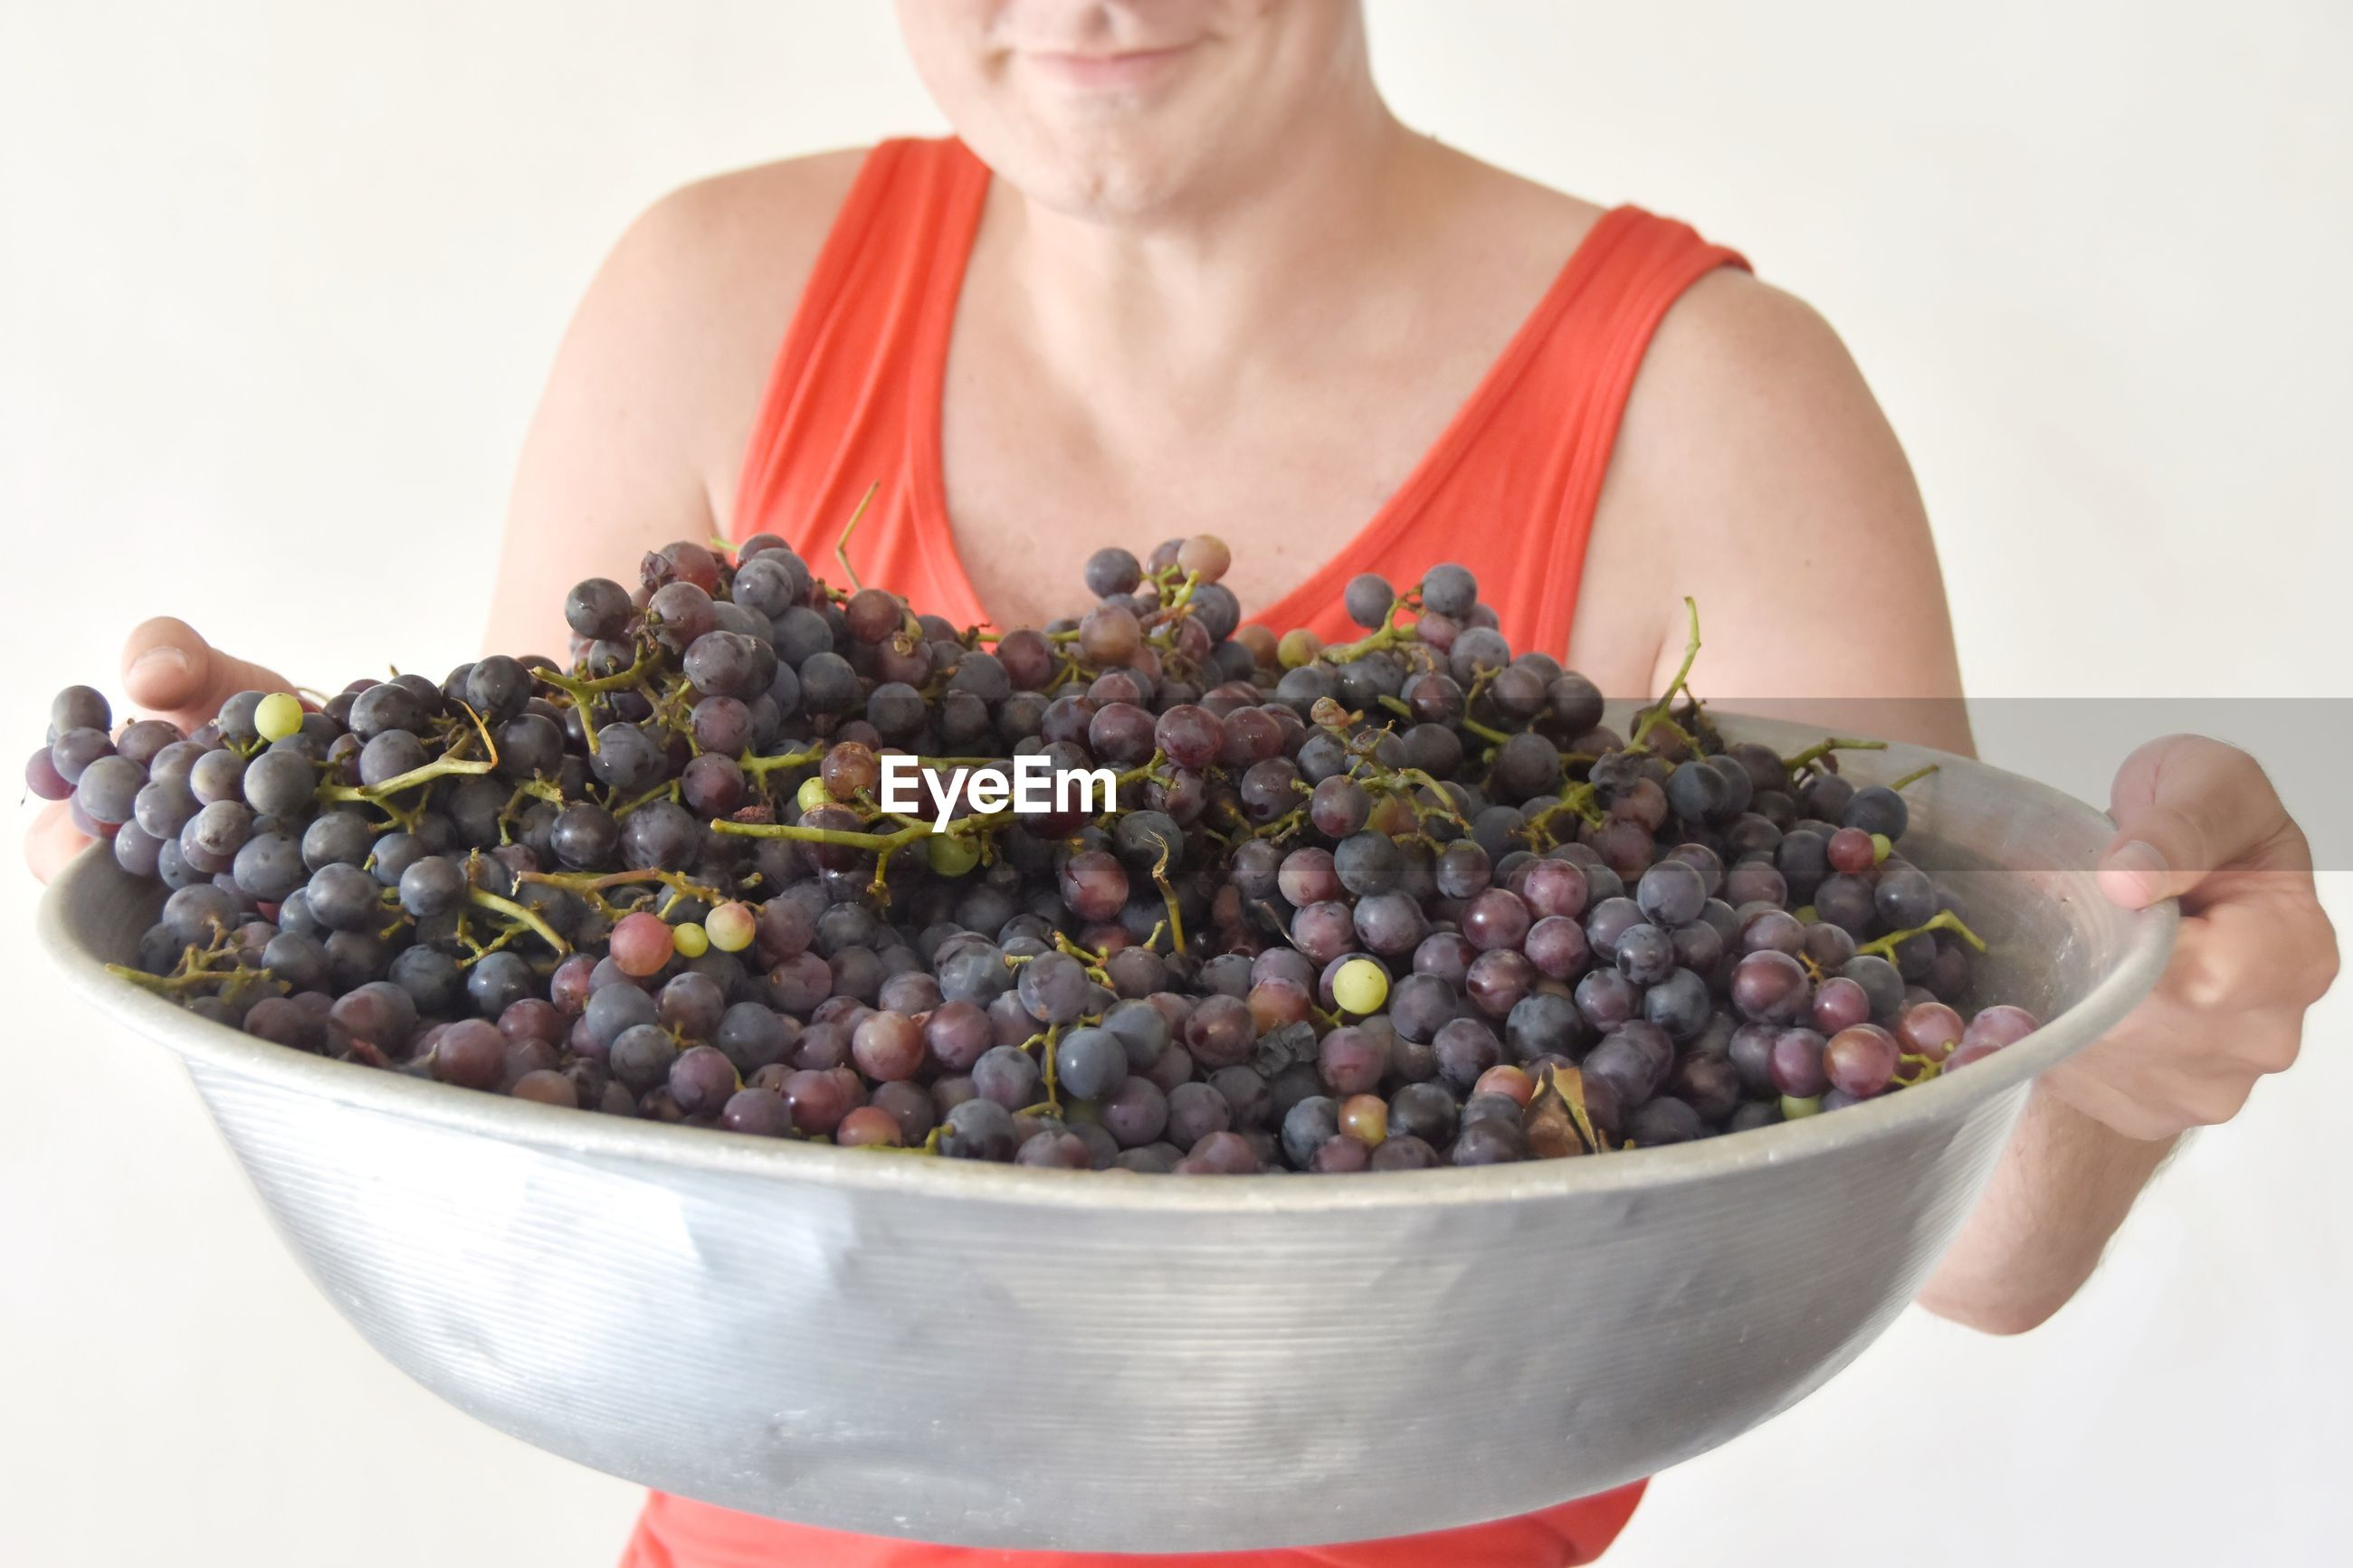 Midsection of woman holding grapes in bowl against white background